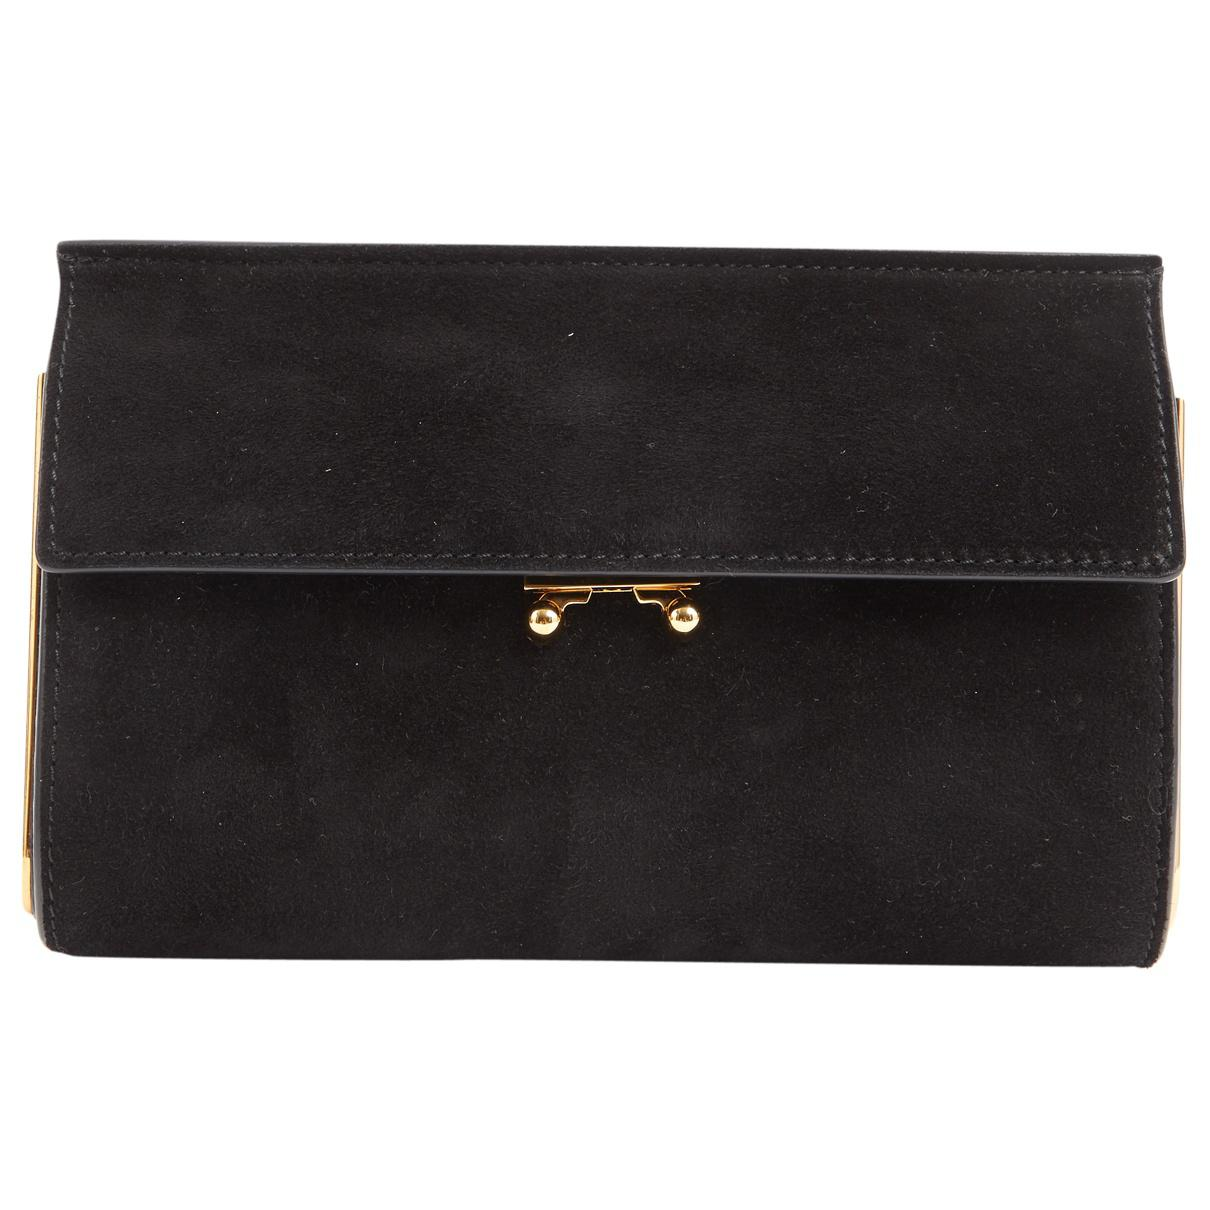 Pre-owned - Patent leather clutch bag Marni 9BlyZPt